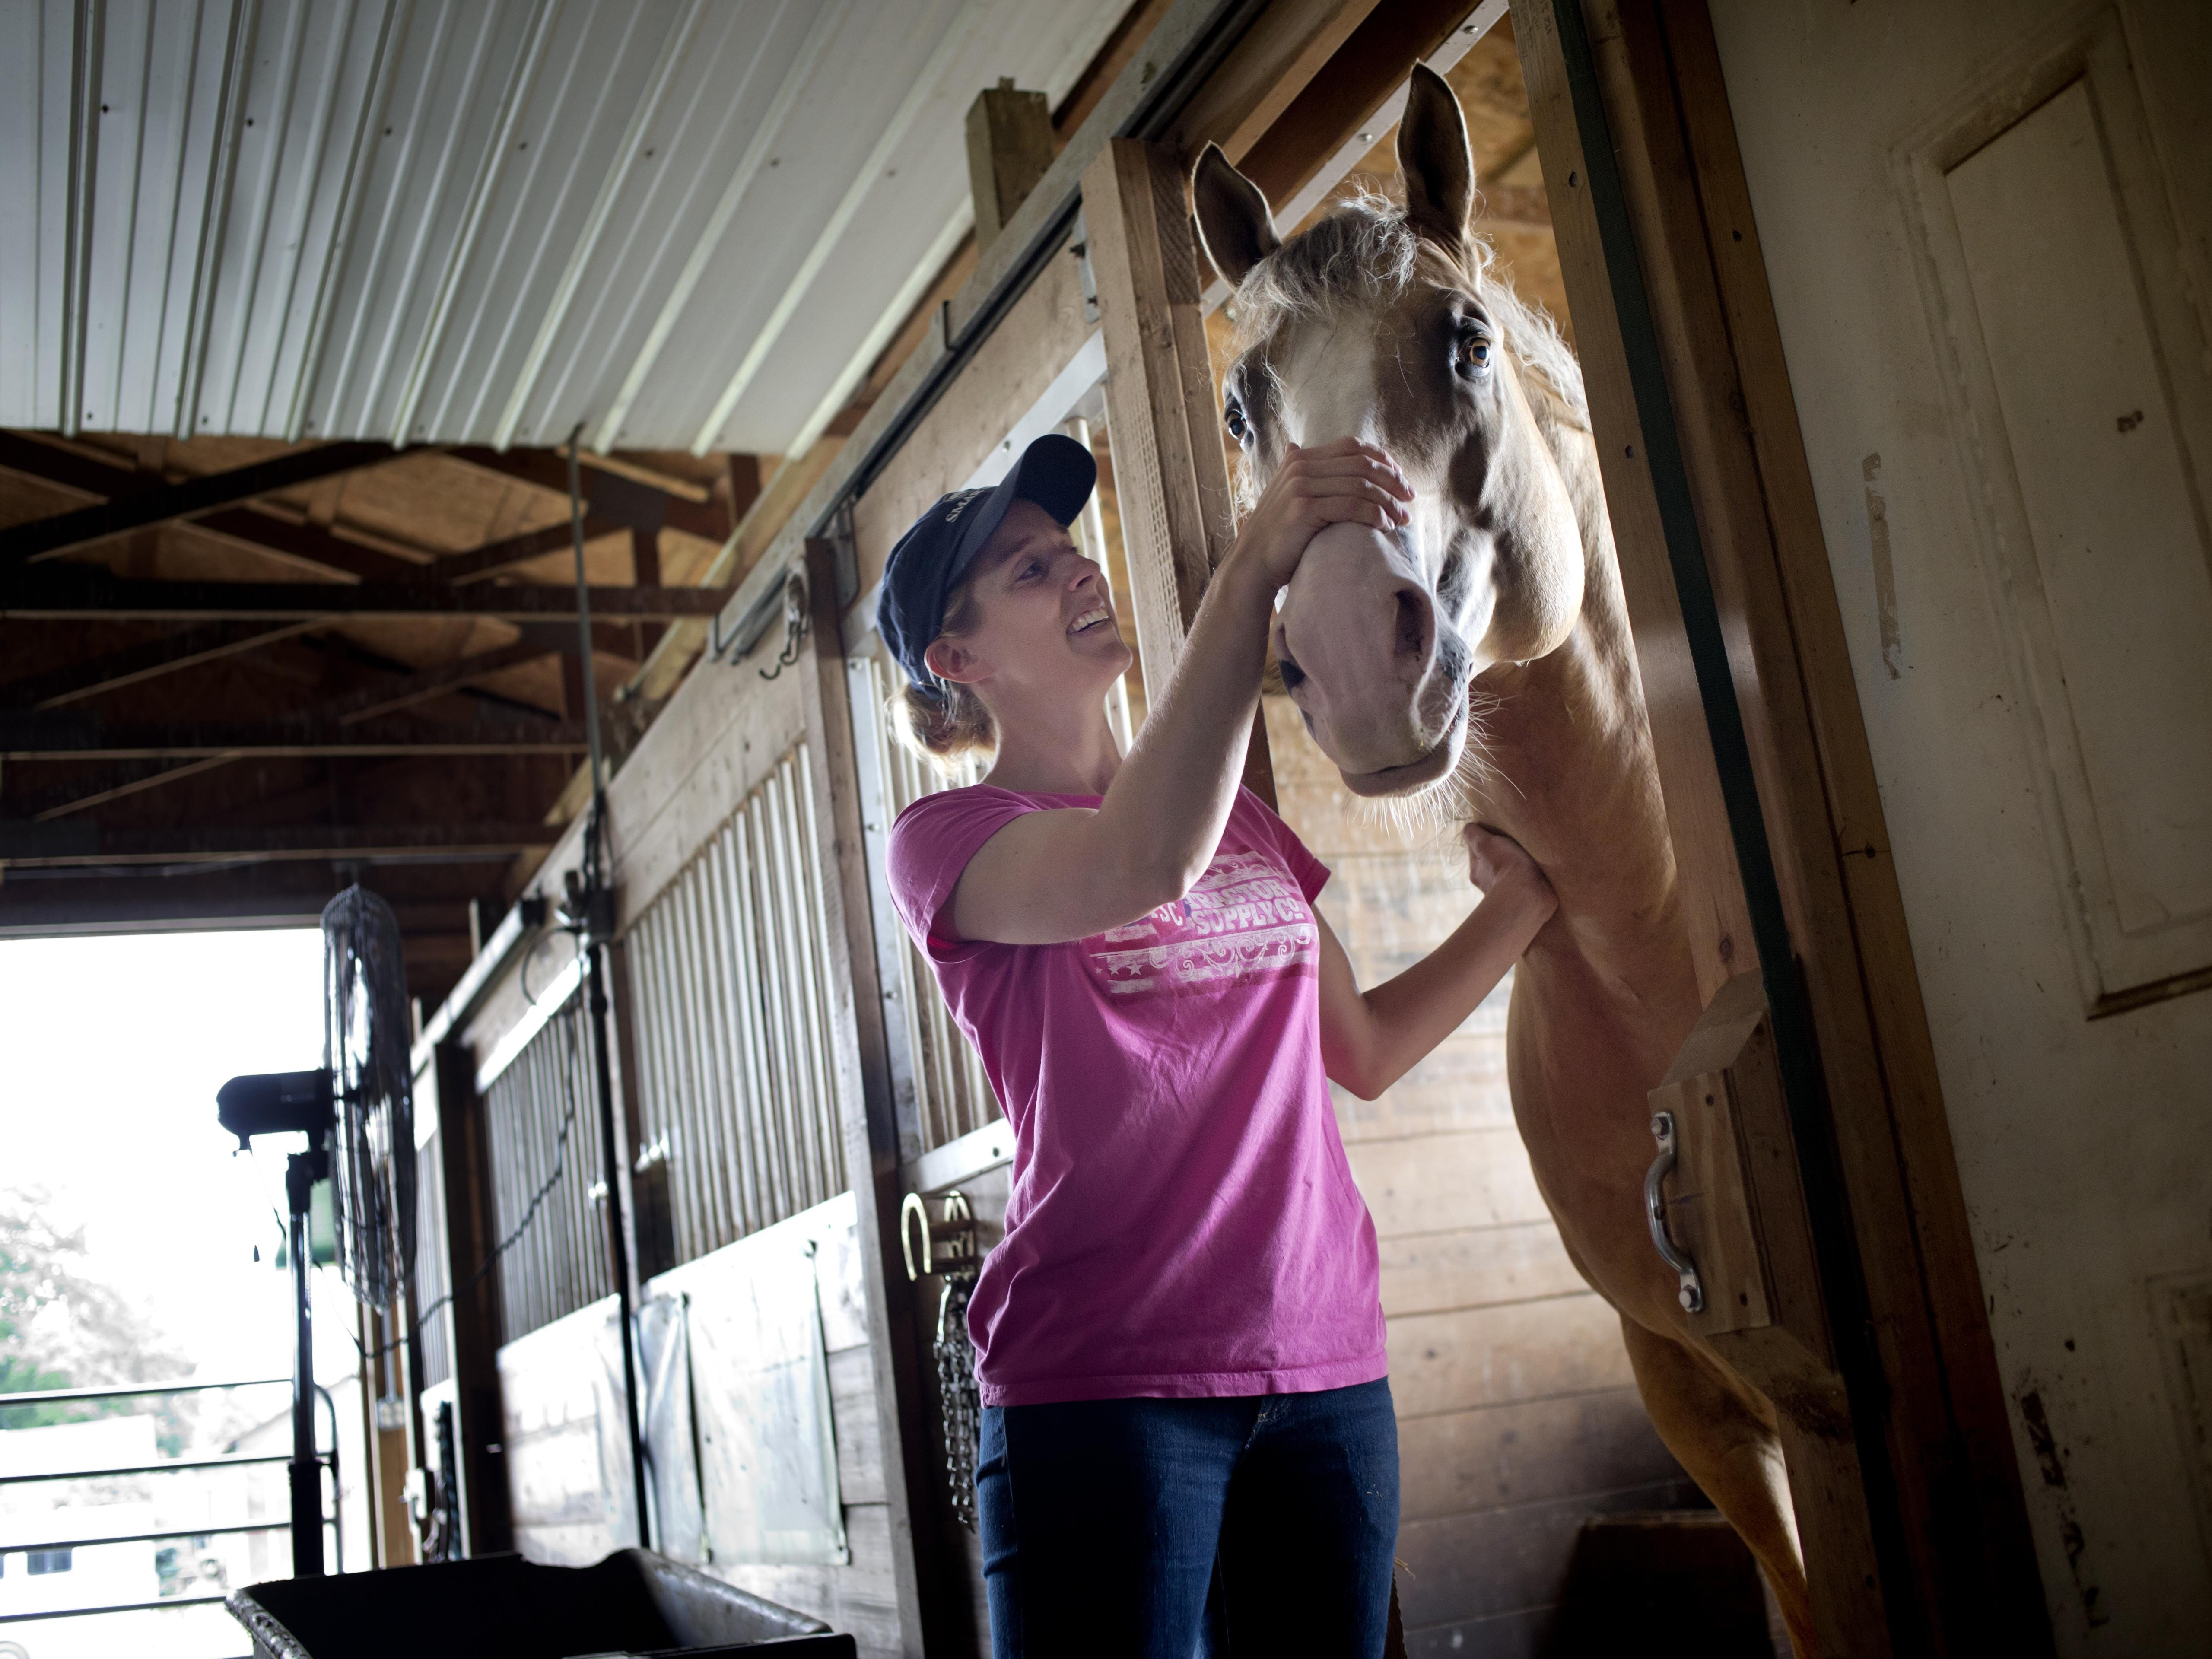 Marine City girls track coach Kristen Humble checks on one of her 20 horses Wednesday at her home and ranch in Clyde Township.